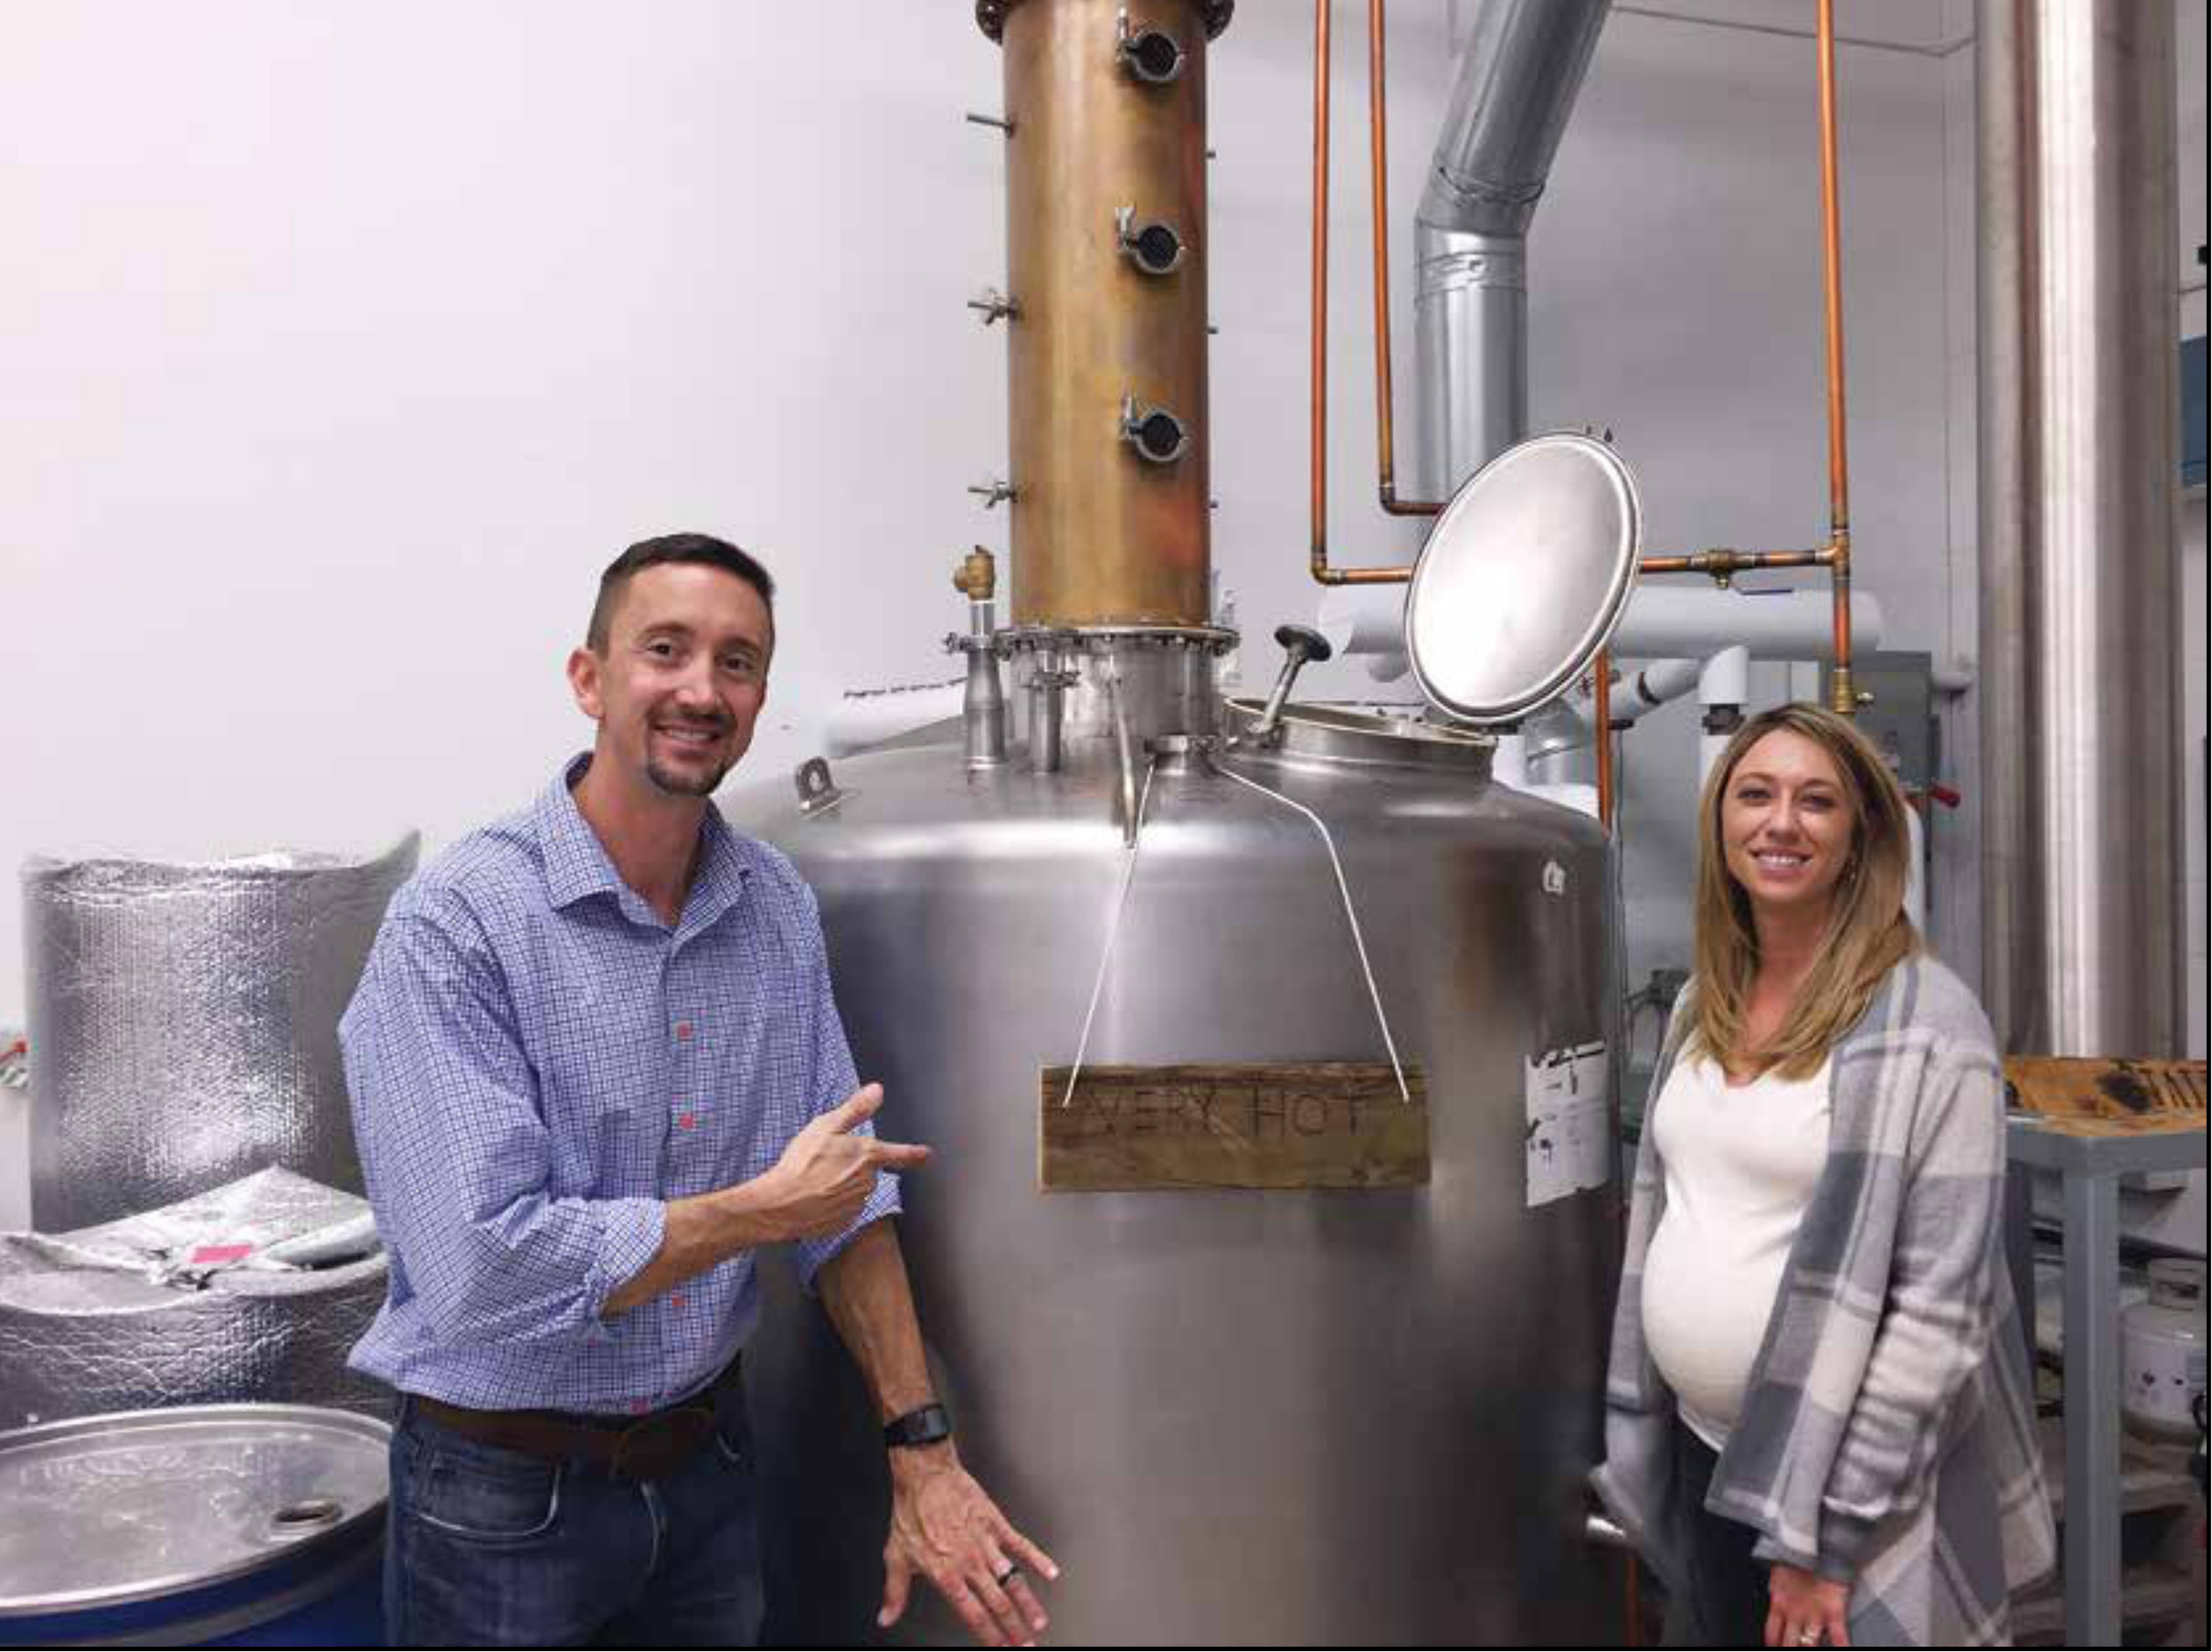 Sean Smiley and his wife Jessie show off a 250-gallon still that he constructed from a milk pasteurizer. Jessie went into labor a few hours after this picture was taken and their son Jordan was born in the wee hours of the next day. Photo © Bill Owens